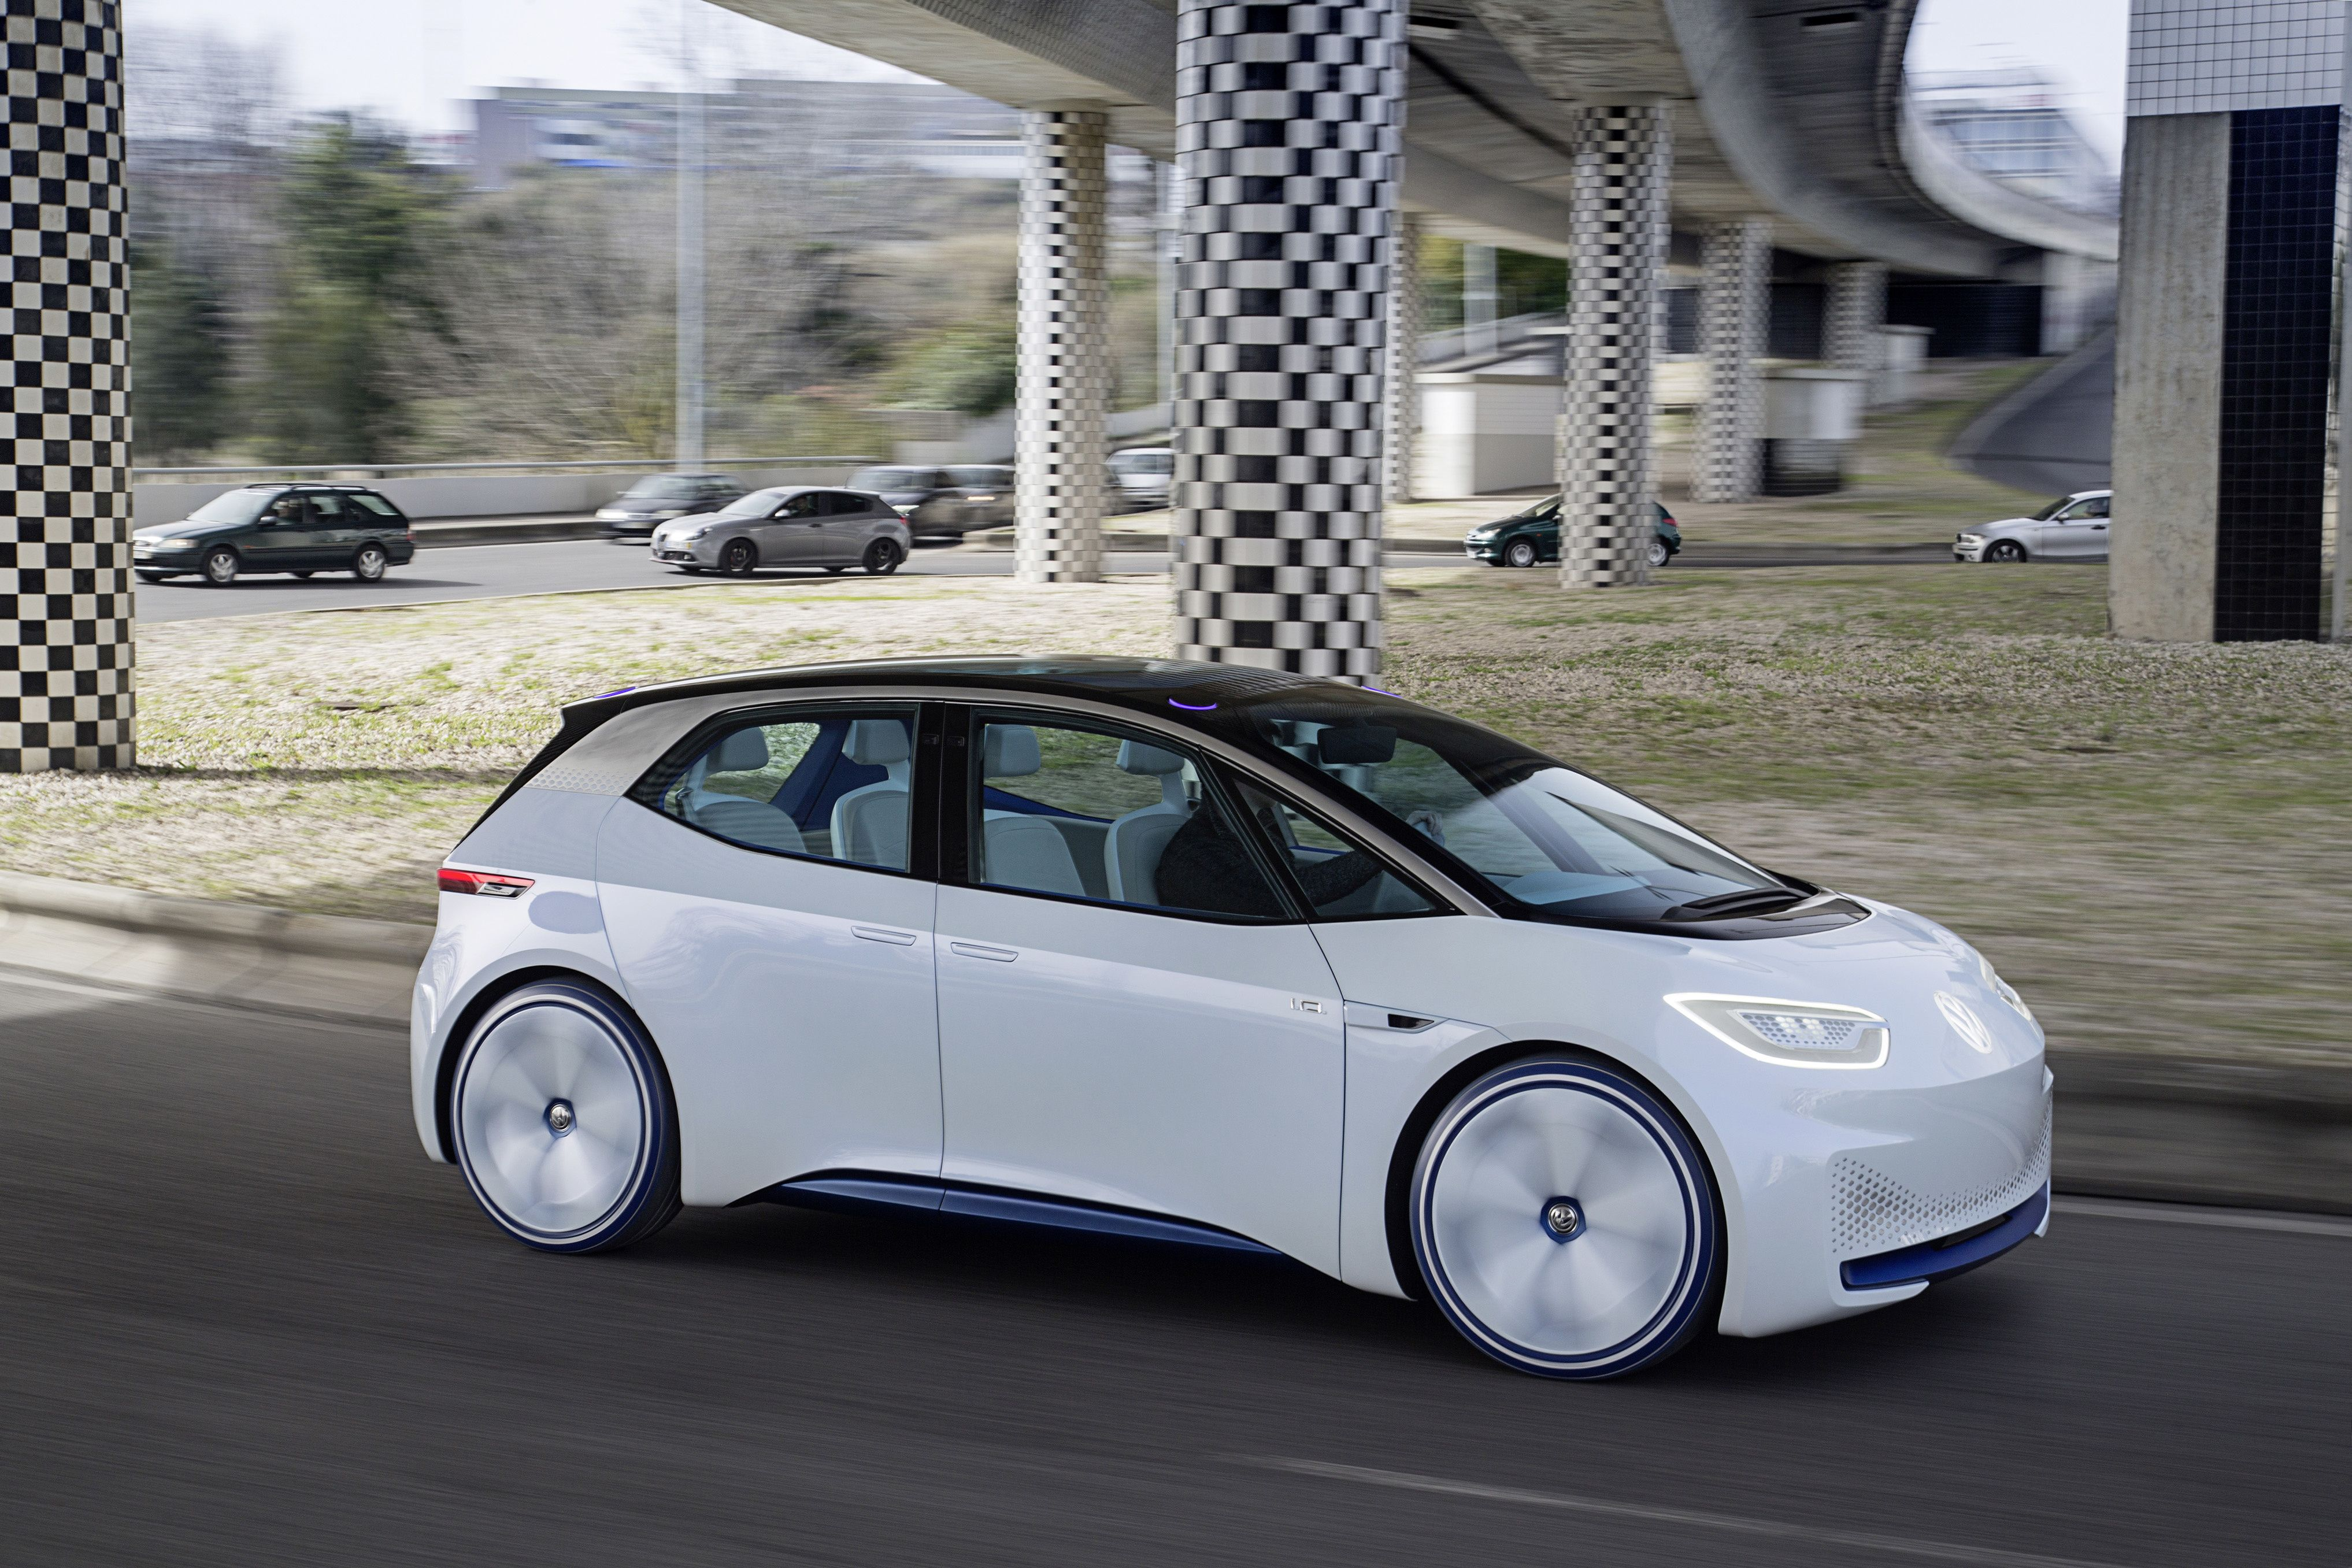 Vw Claims By 2020 Its Electric Cars Will Match Tesla At Half Price Automobile Industry Volkswagen Audi Cars